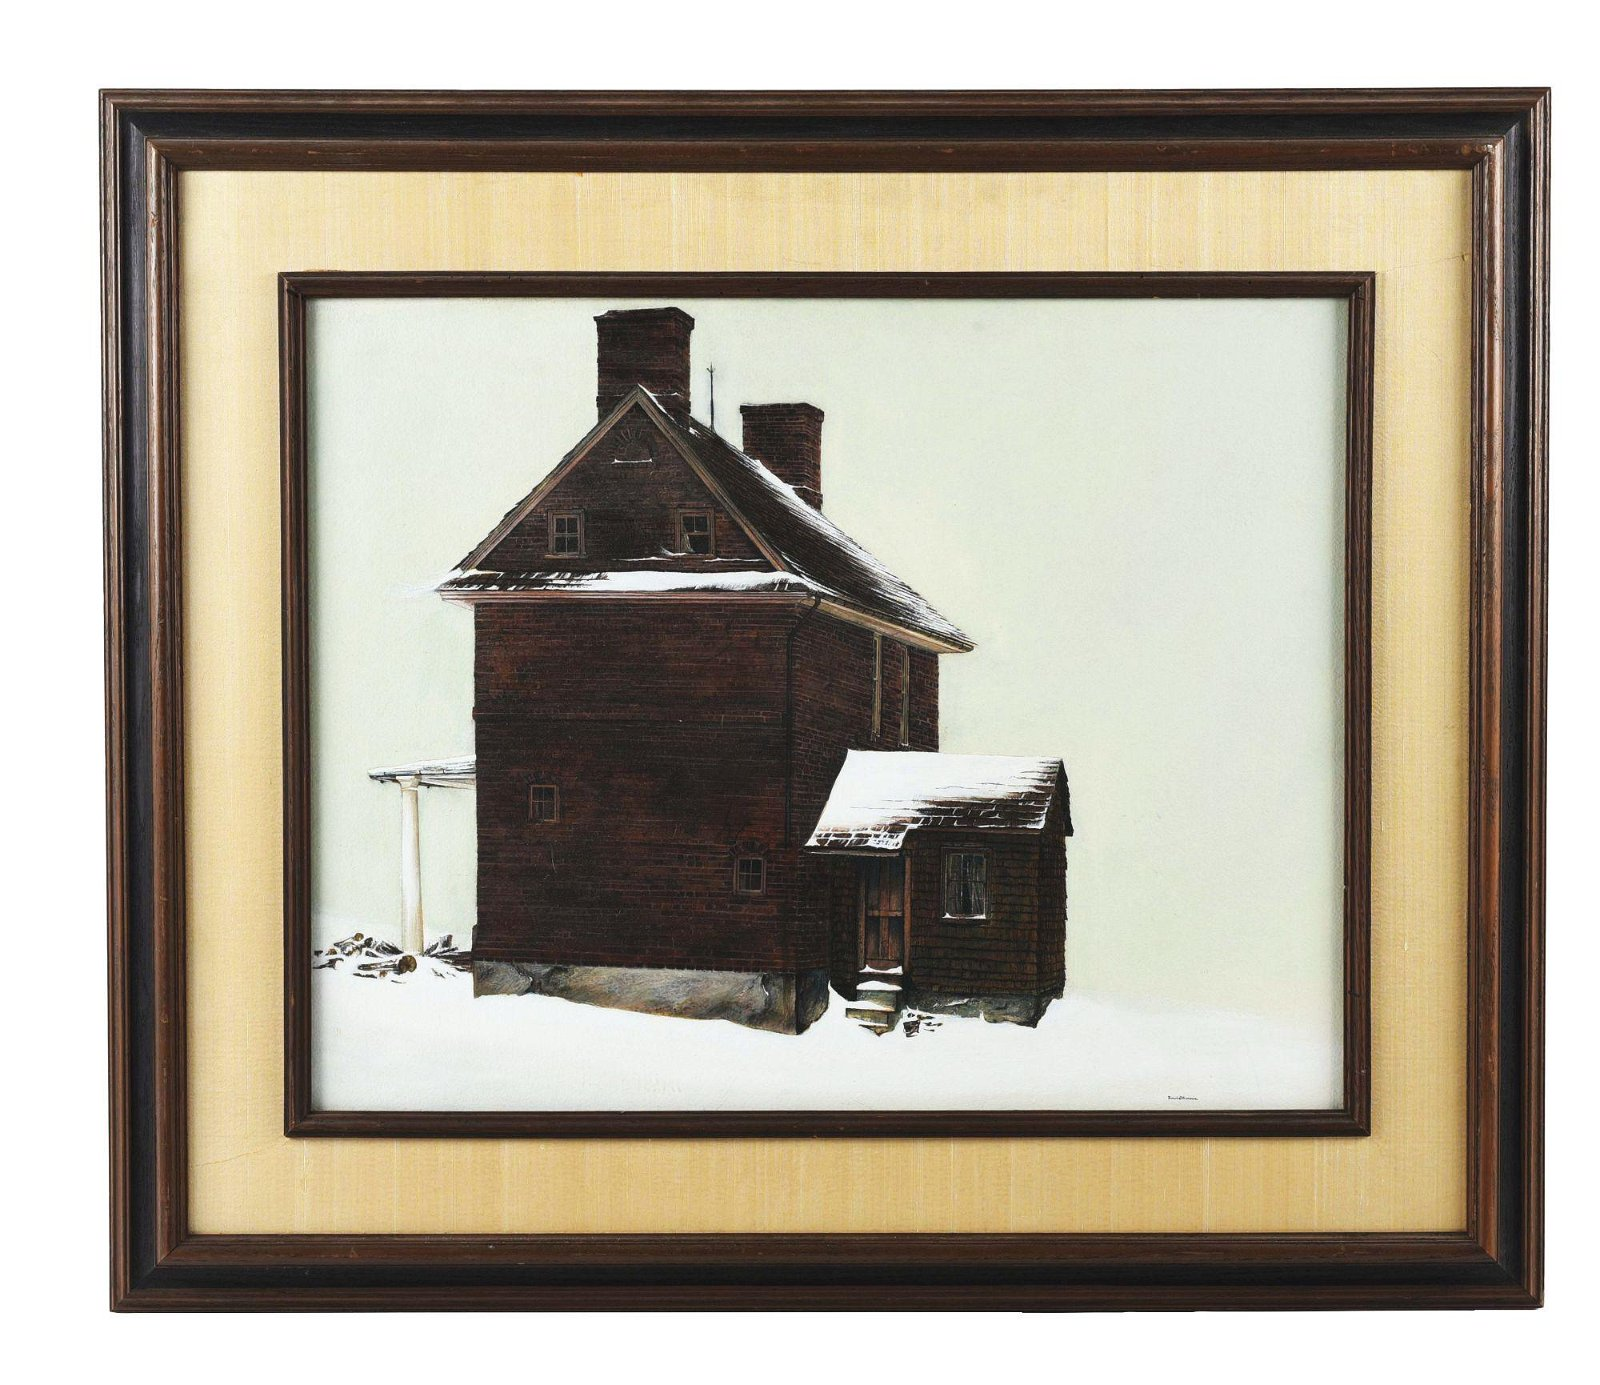 BRICK HOUSE IN THE SNOW.